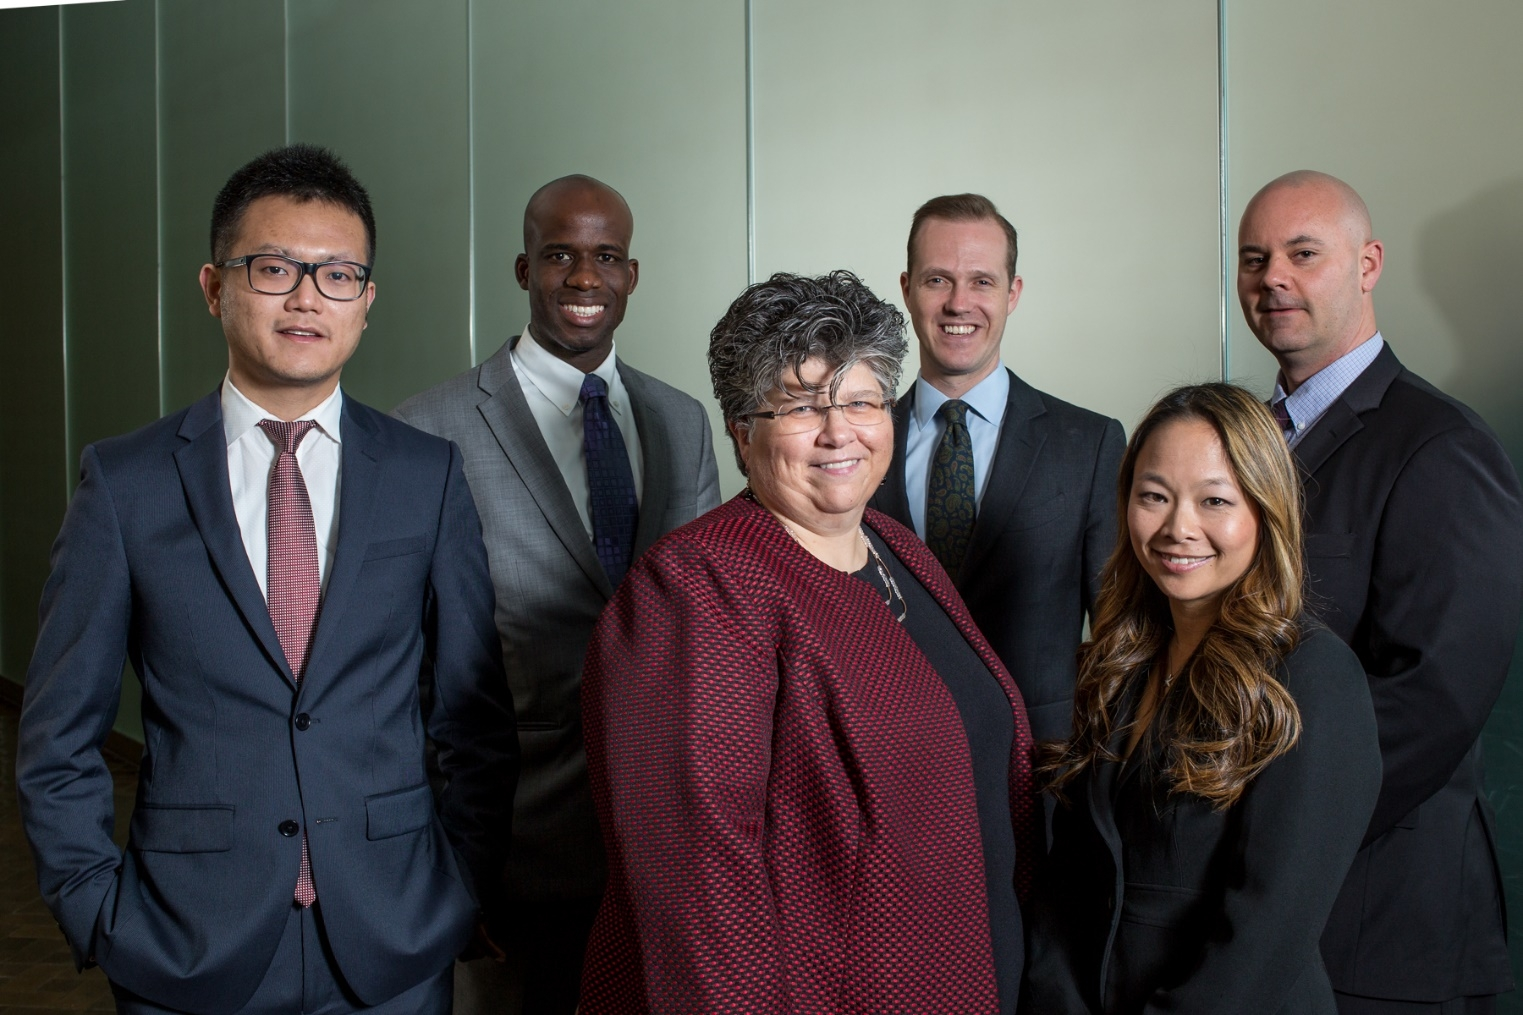 Julia A. Peloso-Barnes, Naoka Nakagawa, Keron Edwards, Julia, Erik Hayden, Lingxi Chen, and James O'Reilly, Morgan Stanley Wealth Management